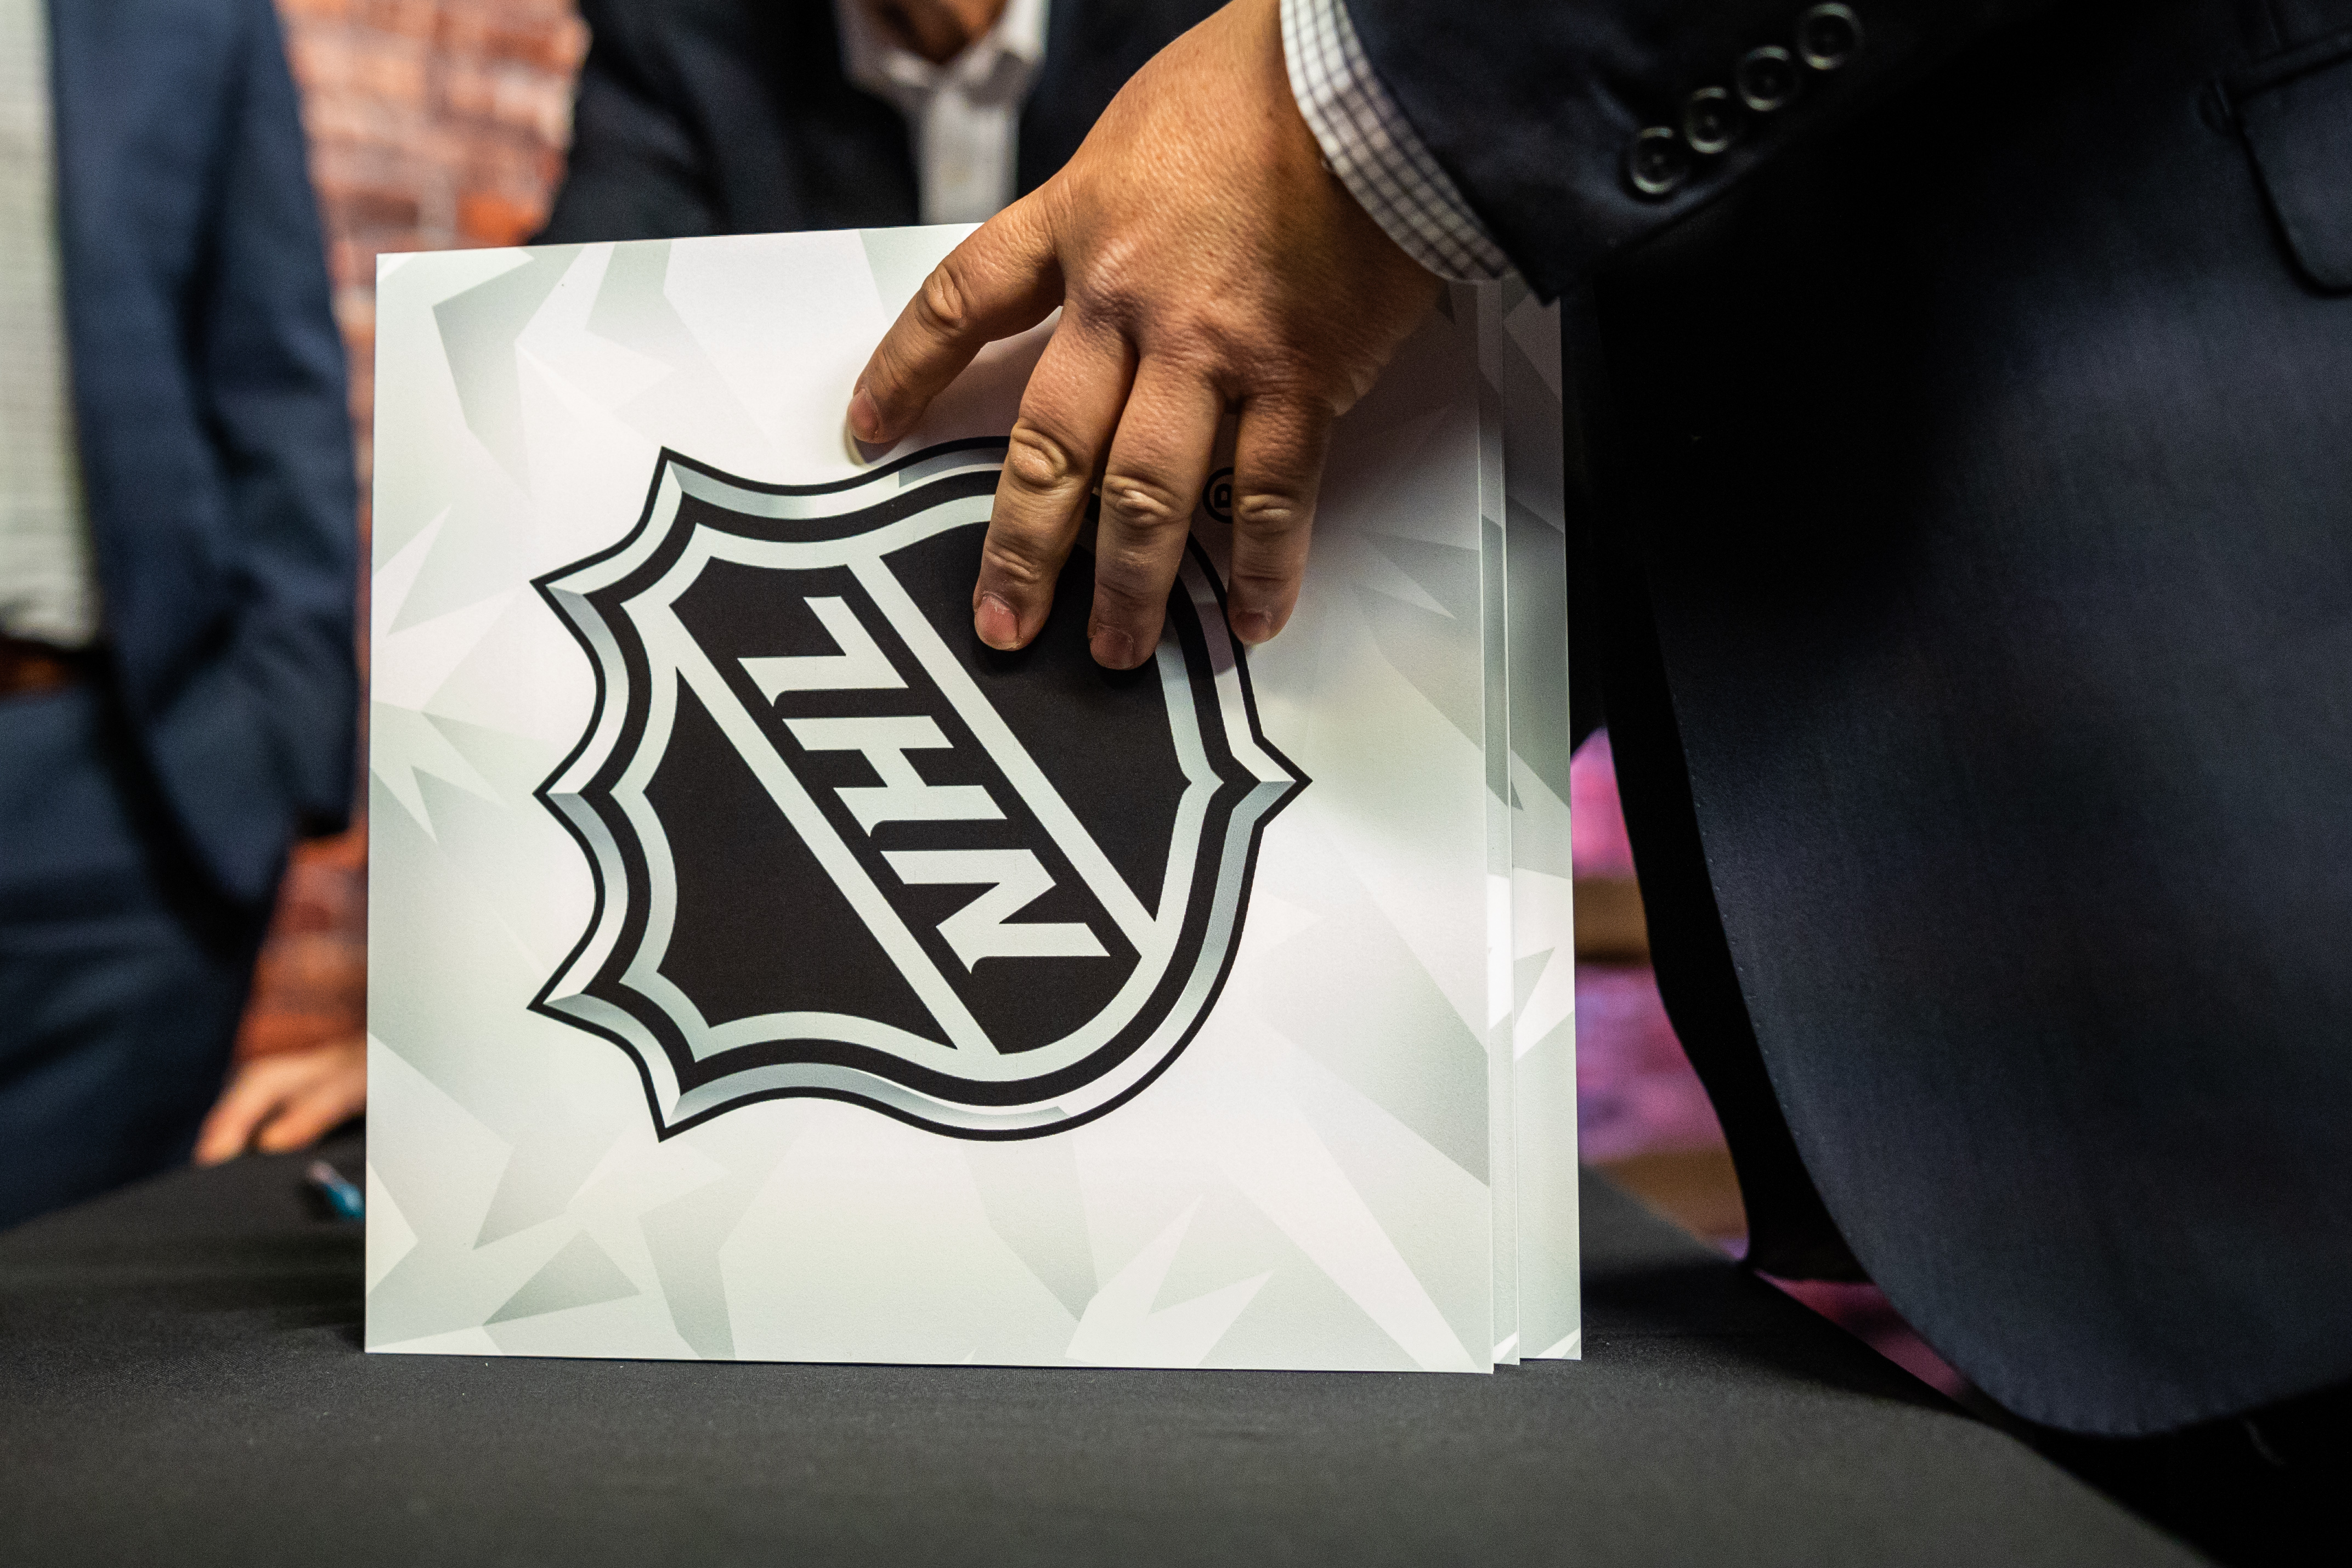 TORONTO, ON - APRIL 10: An NHL official stacks the cards during The National Hockey League Draft Lotteryat the CBC Studios on April 10, 2019 in Toronto, Ontario, Canada.